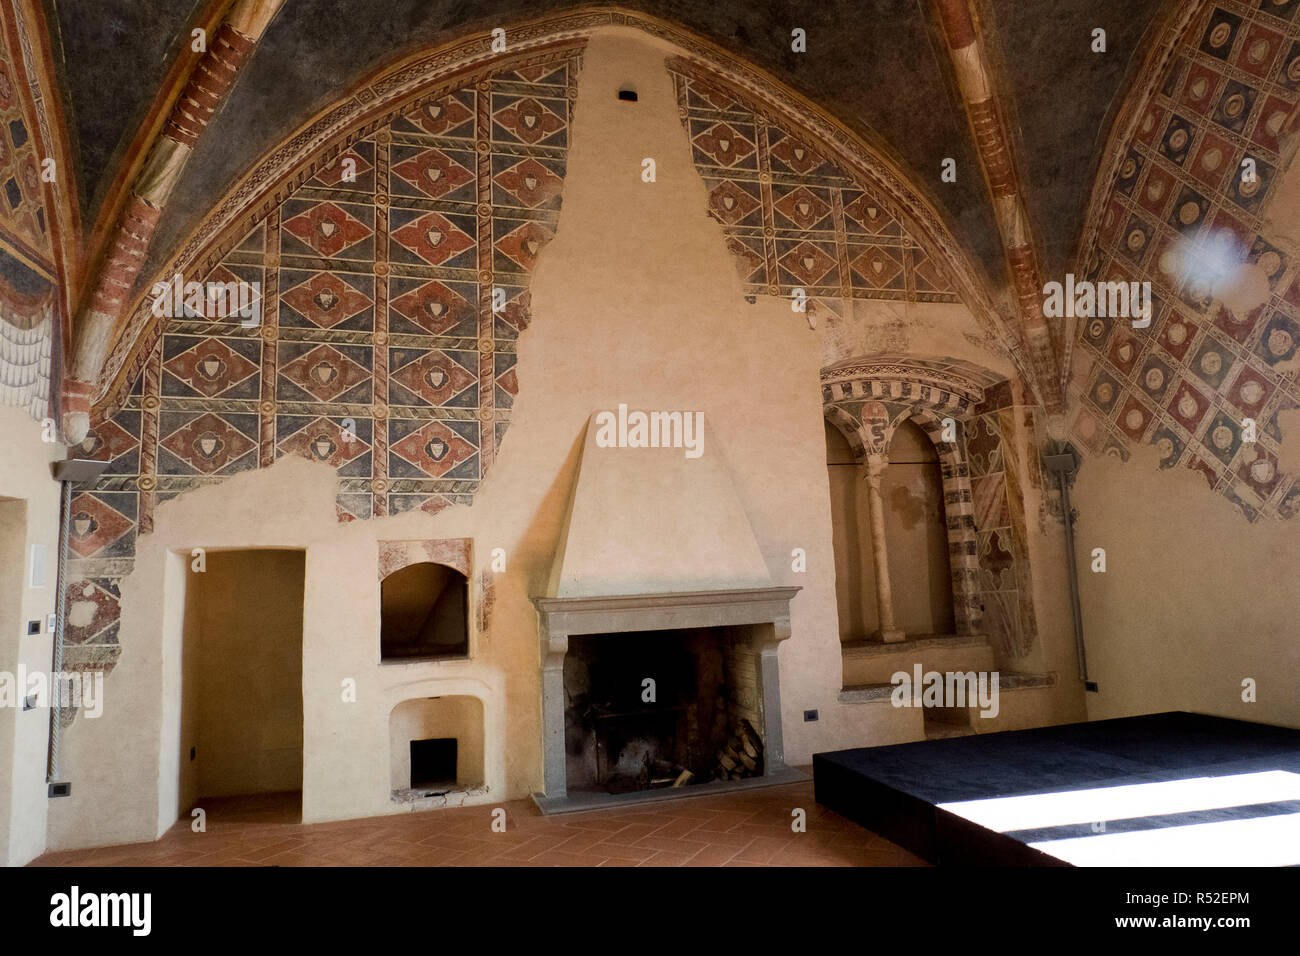 Italy, Lombardia, Cassano Adda - Castle built in the Middle Ages, renovated by Ottone Visconte. It was inhabited by Leonardo da Vinci in the tower. Frescoed rooms, Stock Photo